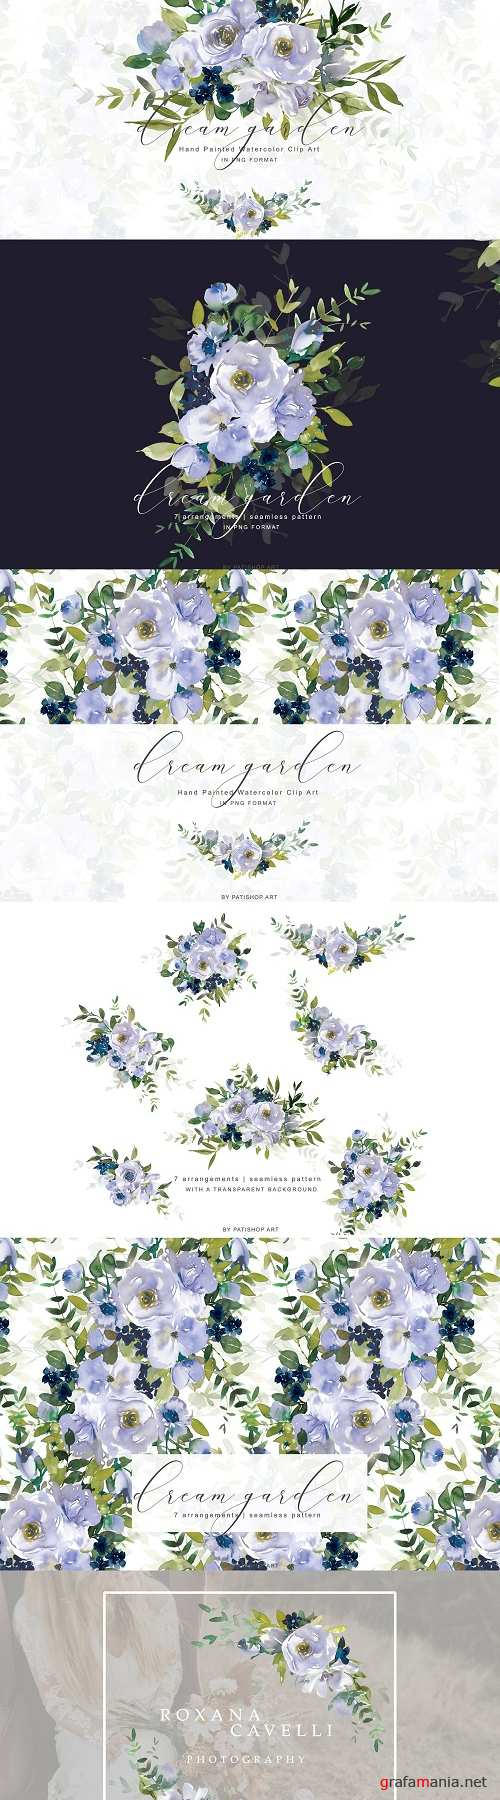 Watercolor Violet Floral Clipart Set - 3912522